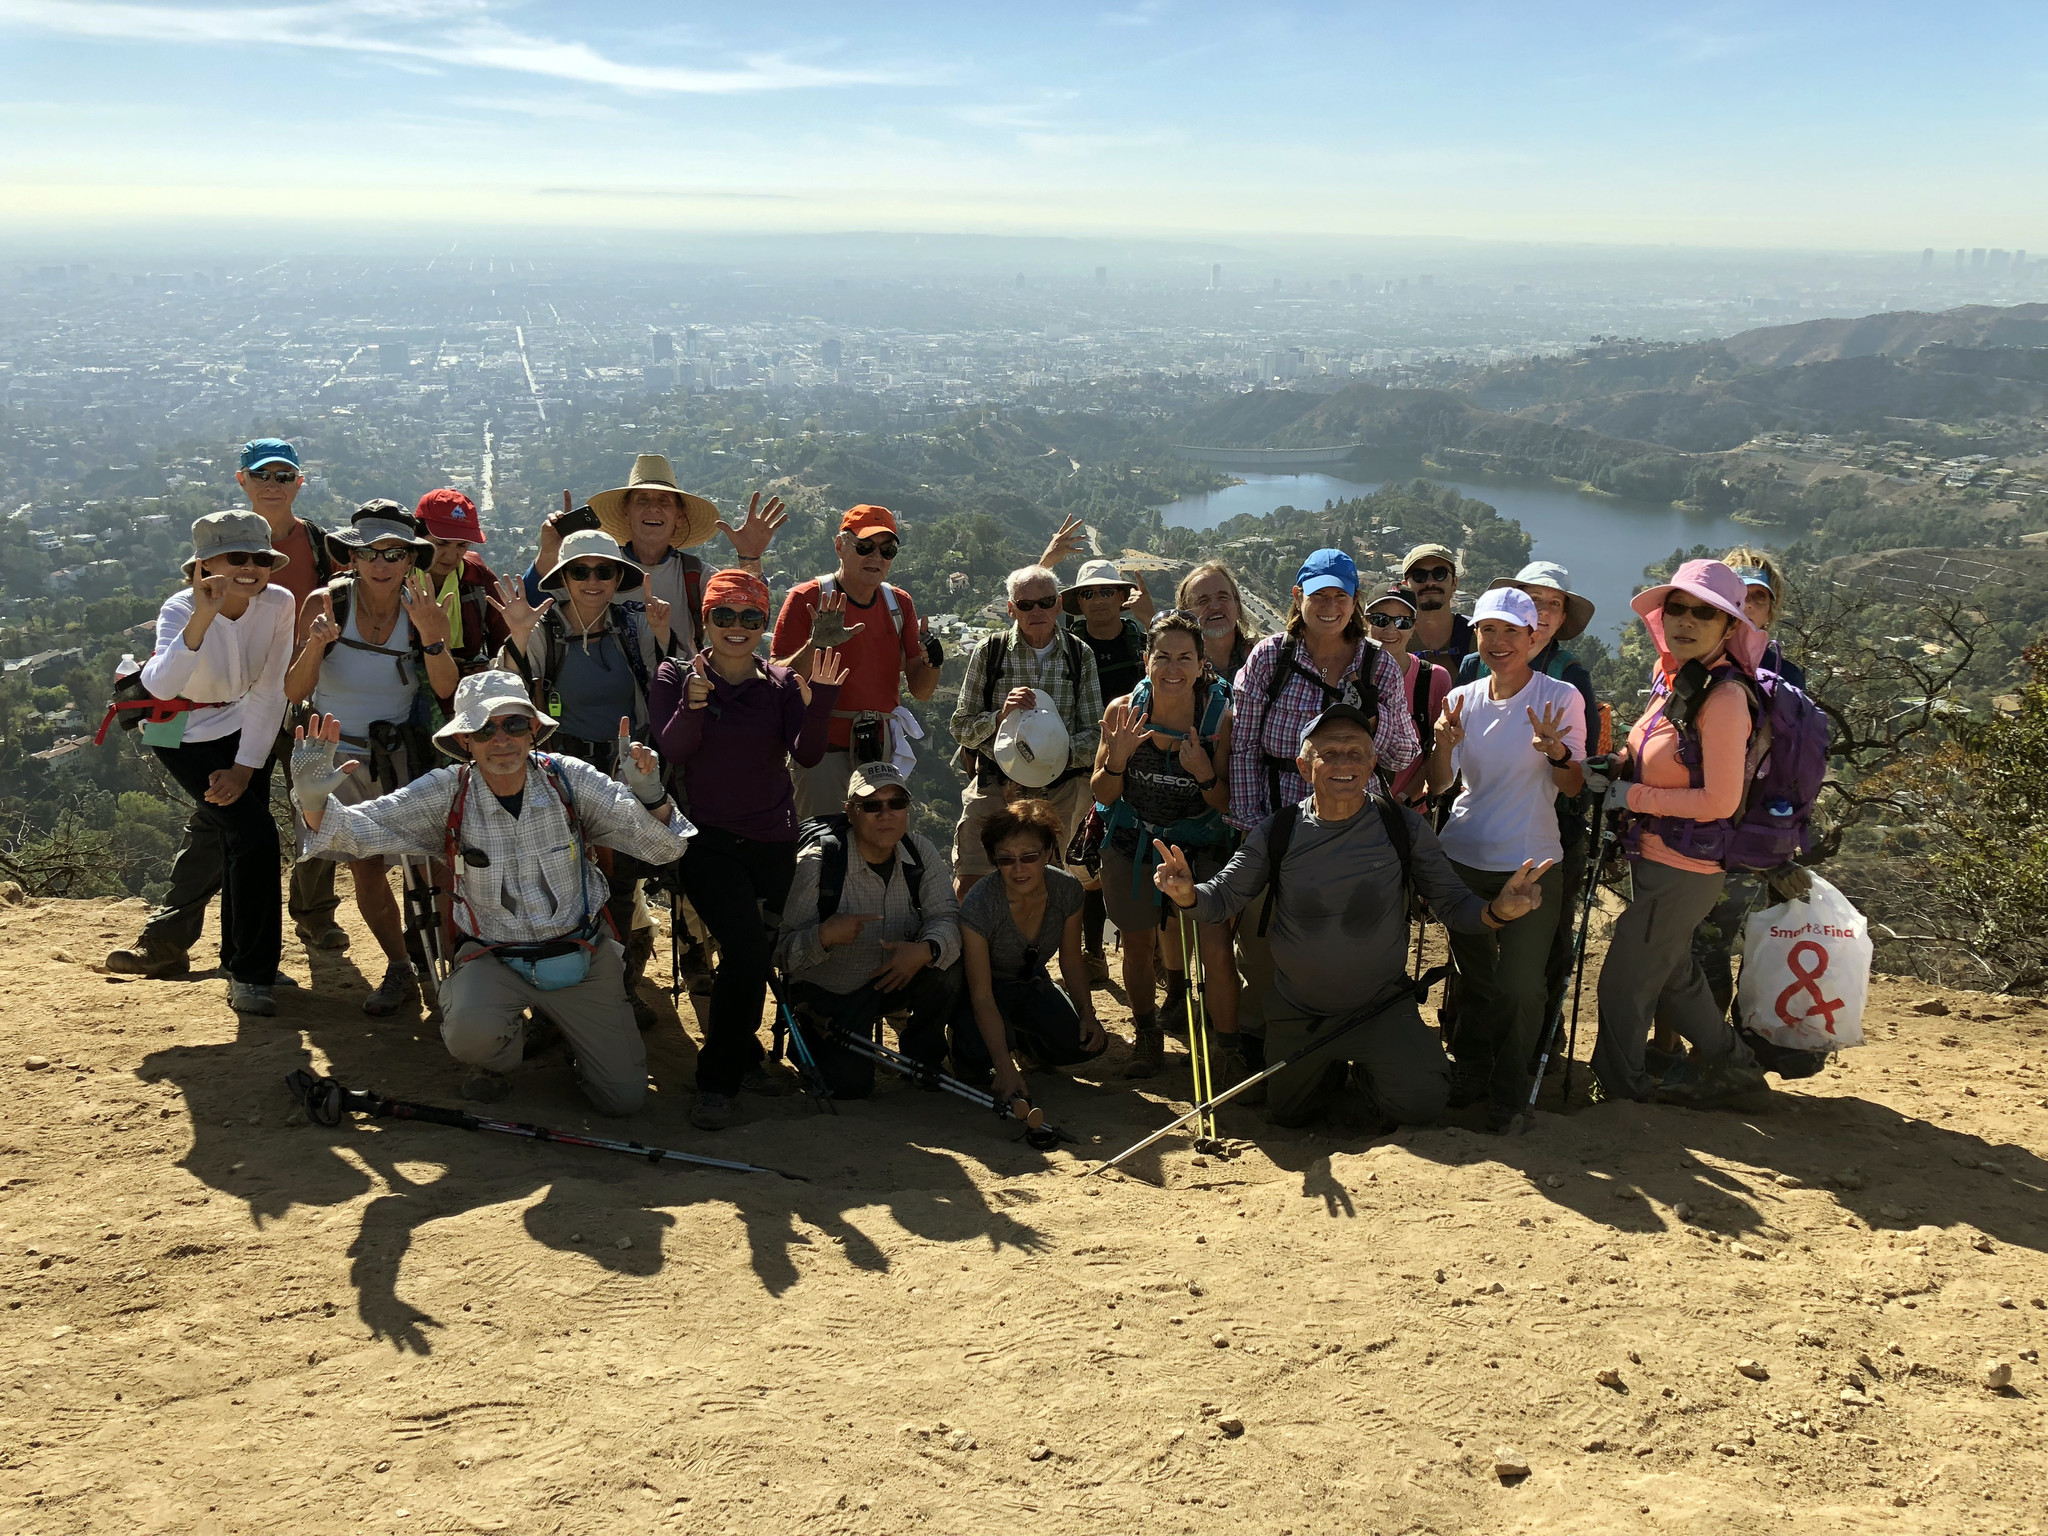 Sierra Club takes hikers to trails near and far. Here a group poses atop Mt. Lee in Griffith Park wh